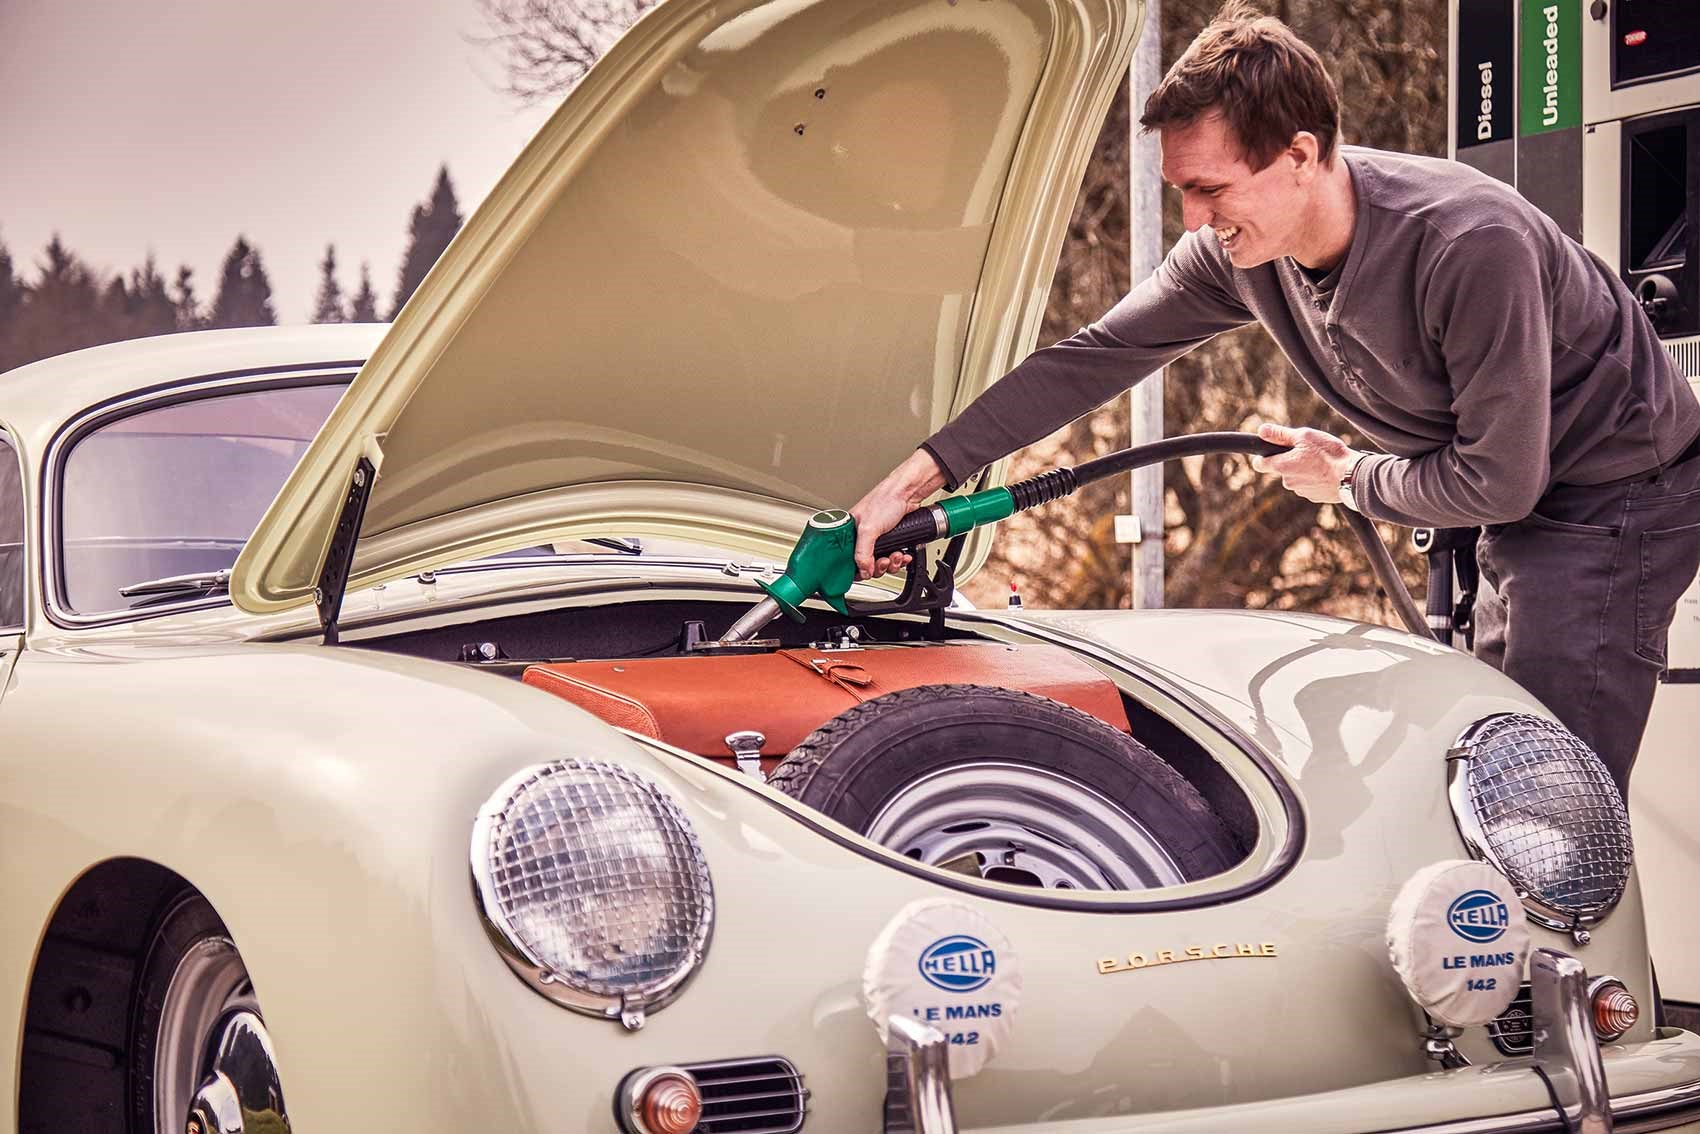 CAR magazine's James Taylor fills up the Porsche 356: fuel tank under the bonnet!